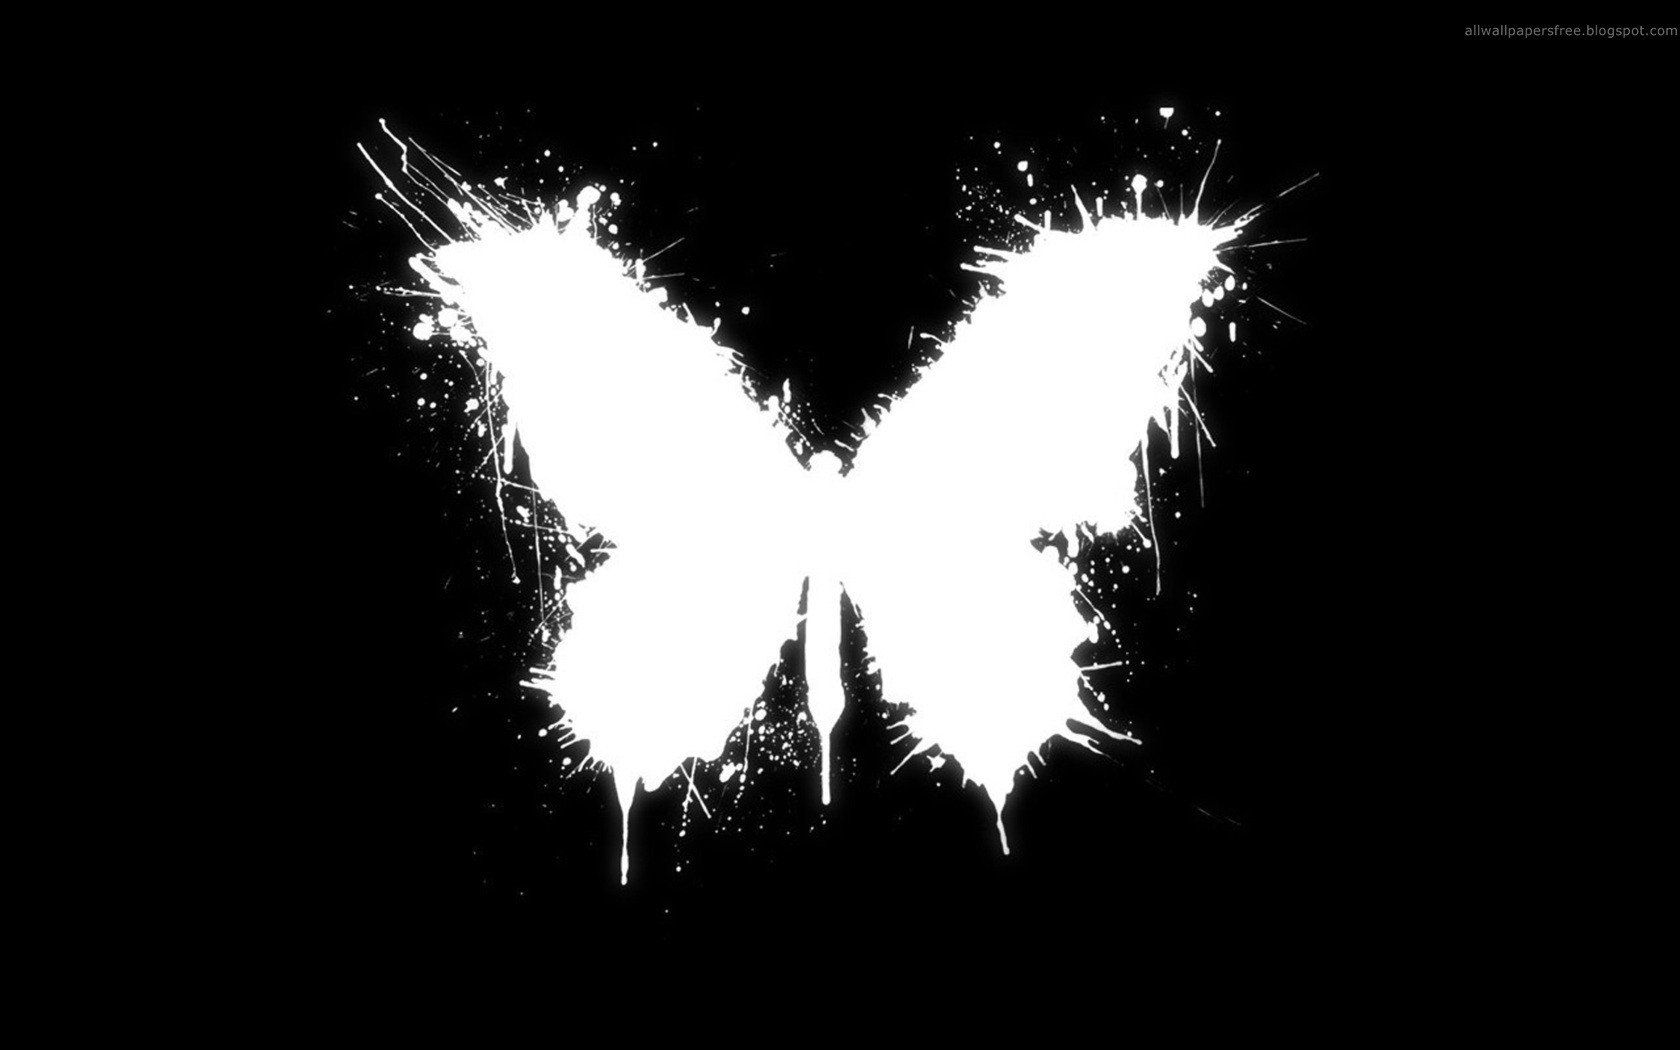 4 The Butterfly Effect HD Wallpapers Background Images 1680x1050